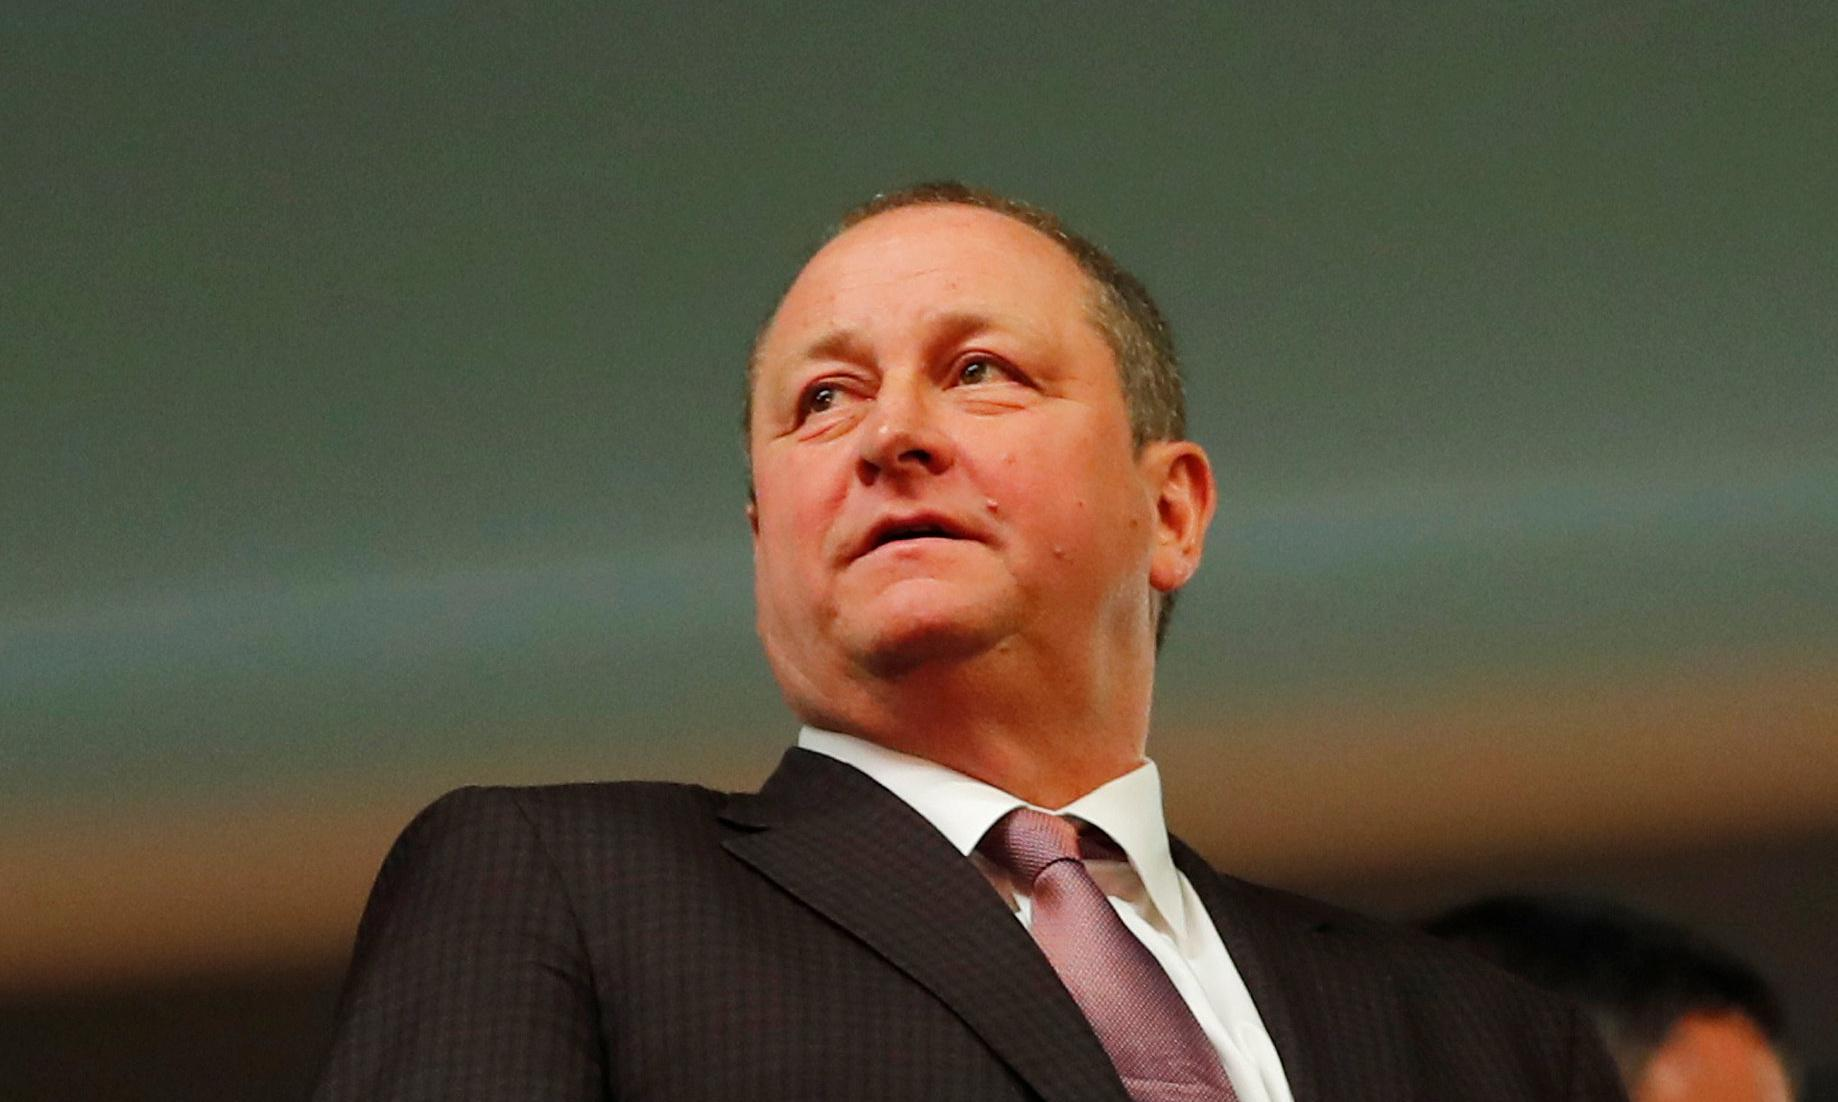 House of Fraser landlord serves notice on Mike Ashley to leave